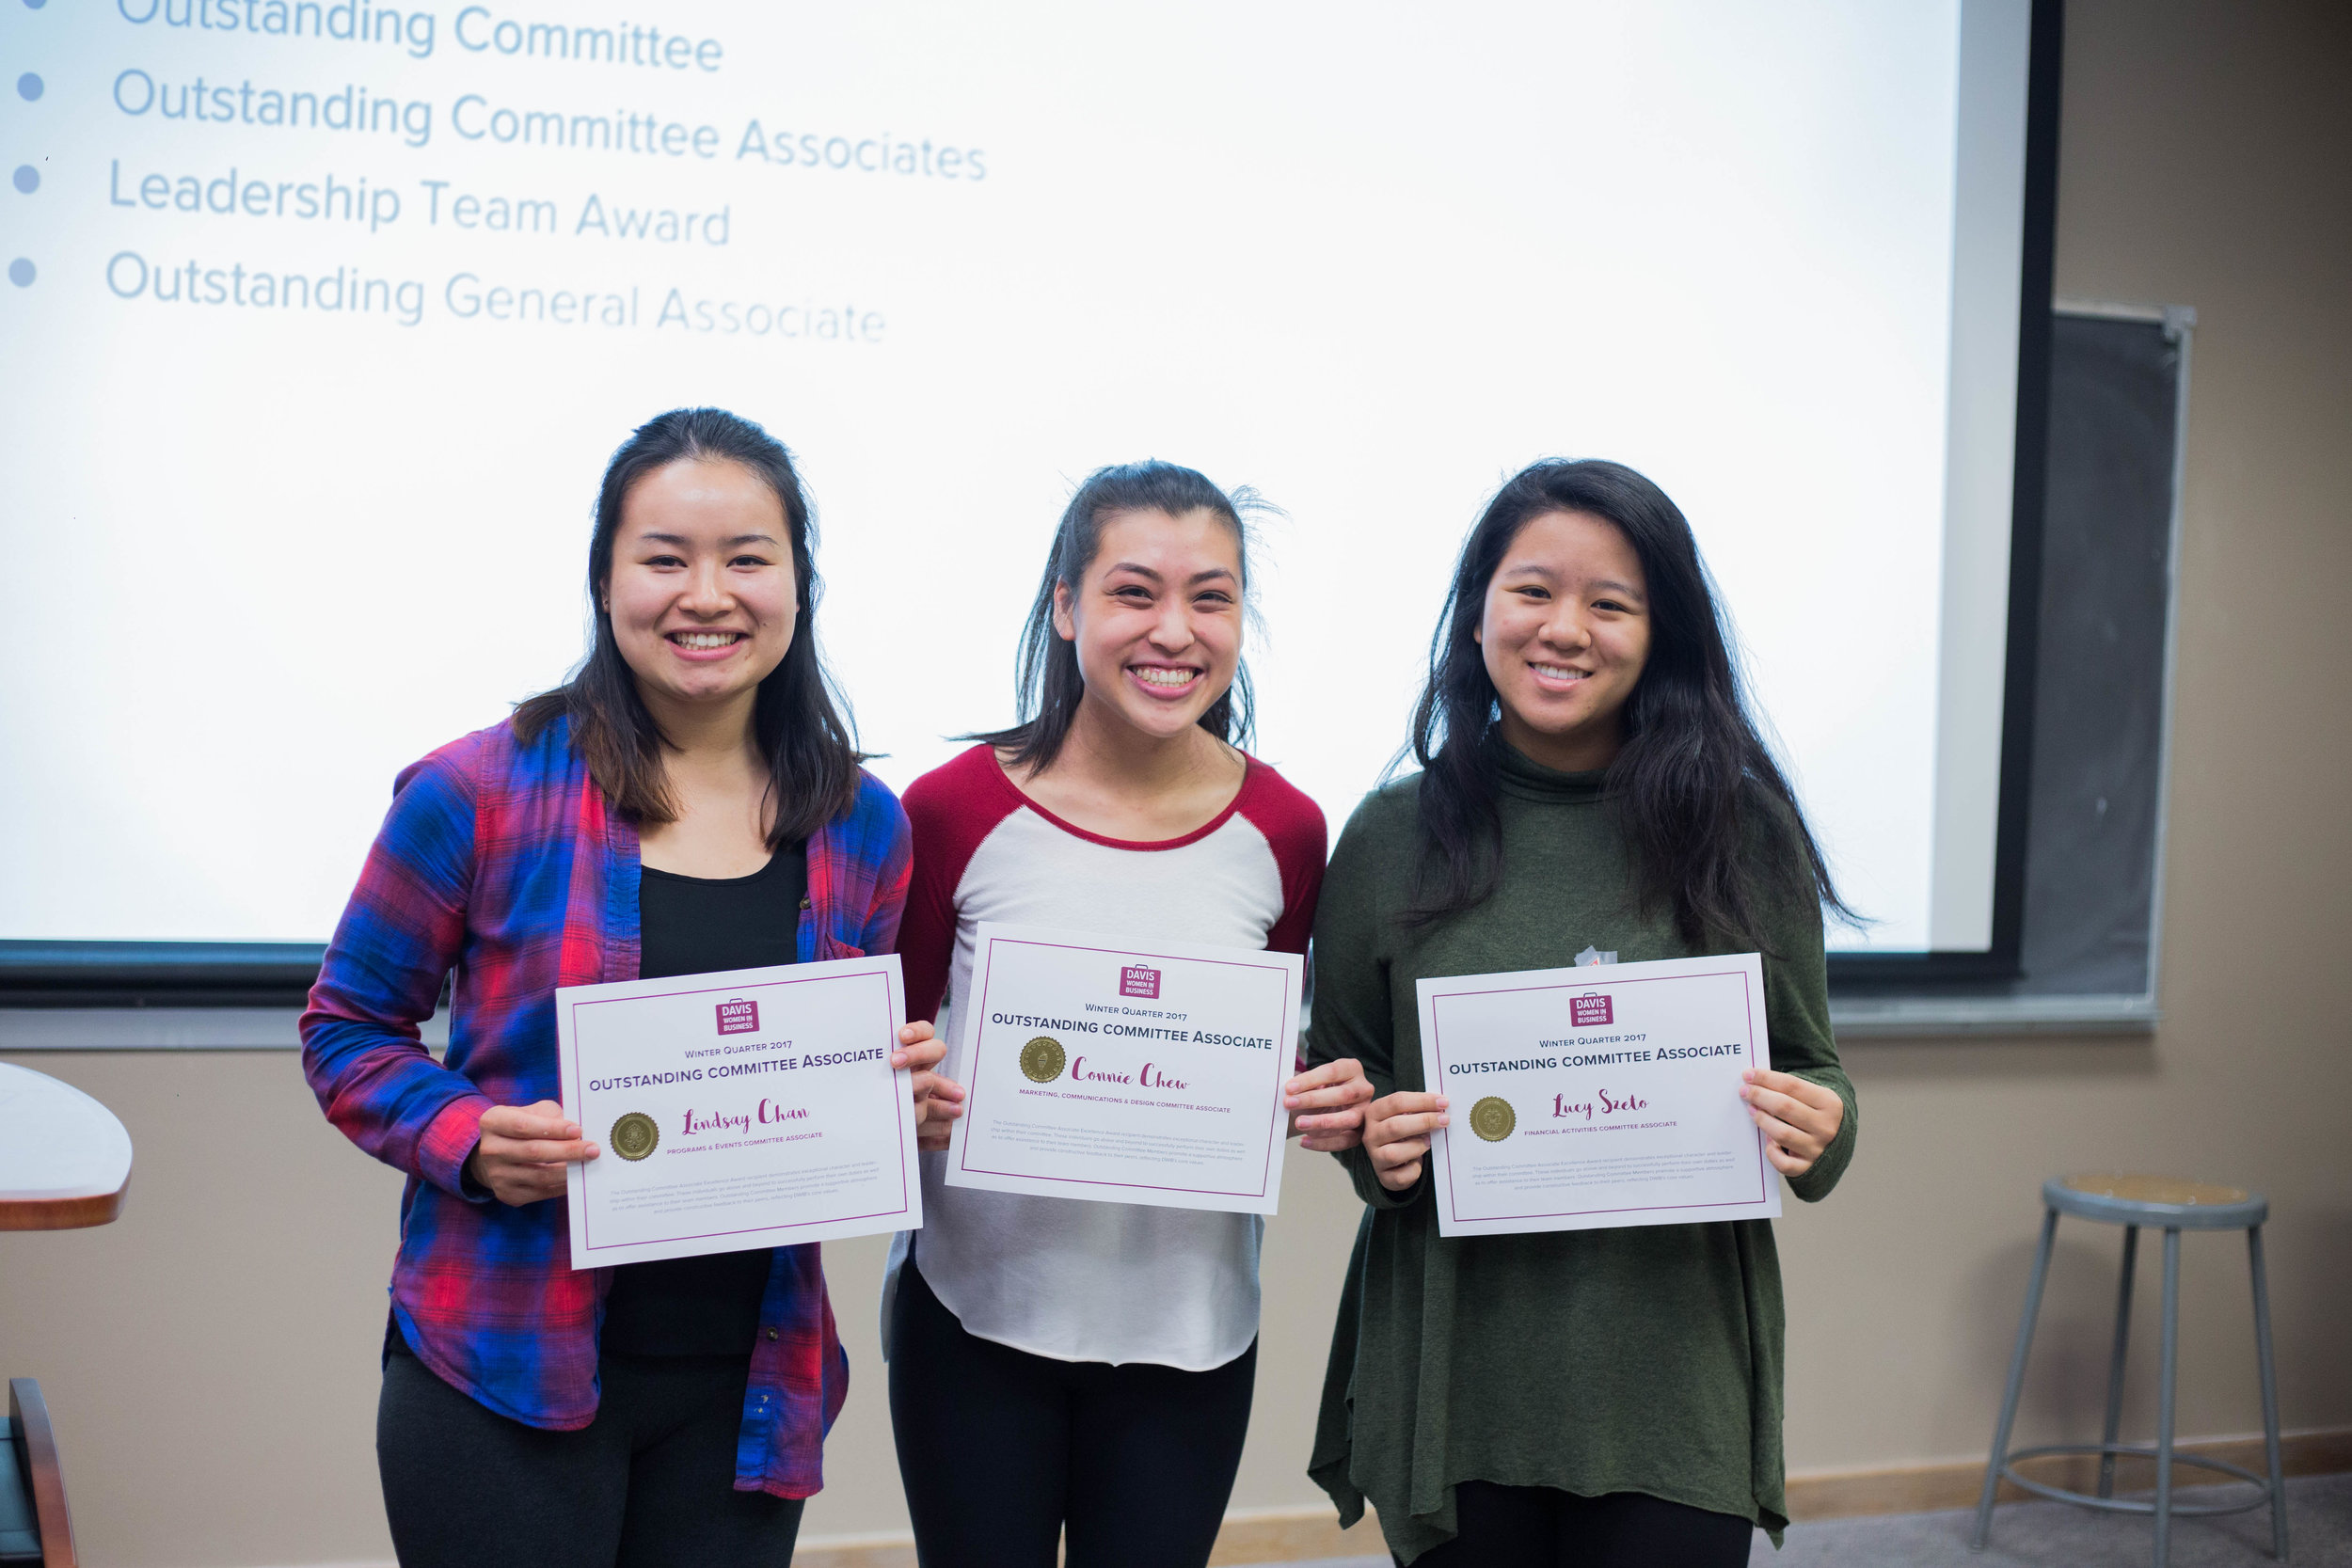 Lindsay, Connie, and Lucy, recipients of Winter Outstanding Committee Associate